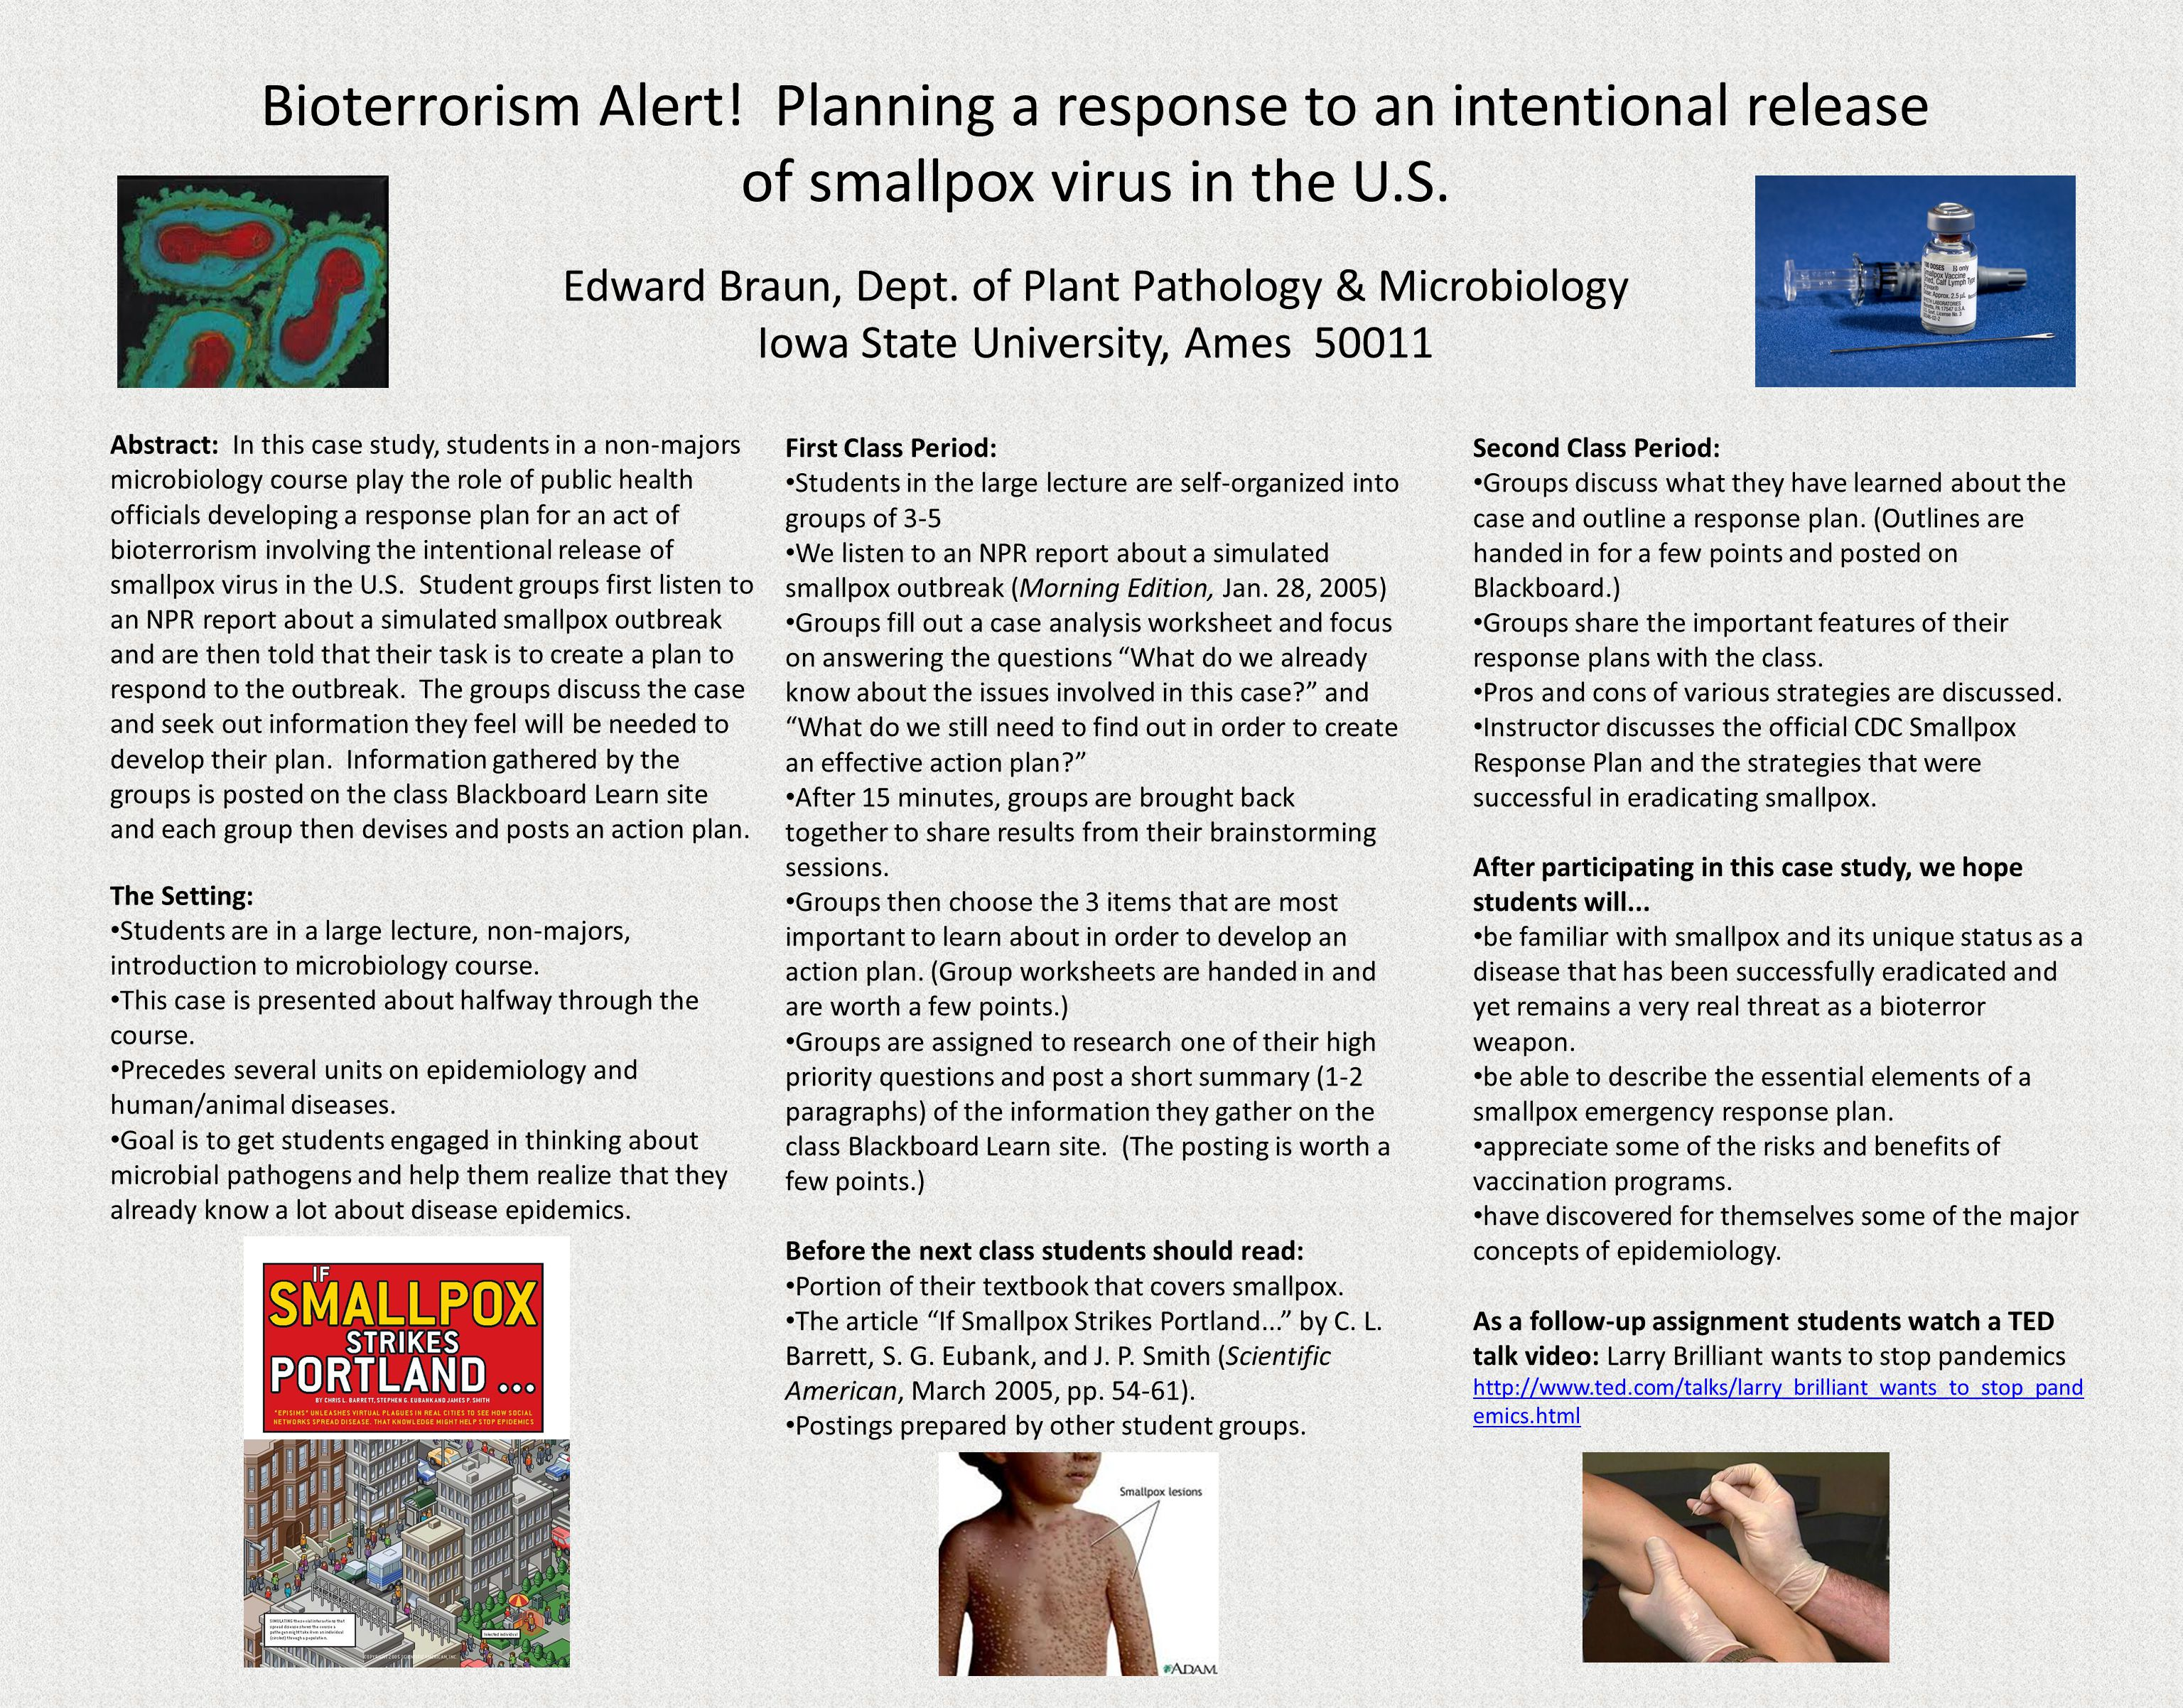 Bioterrorism Alert. Planning a response to an intentional release of smallpox virus in the U.S.